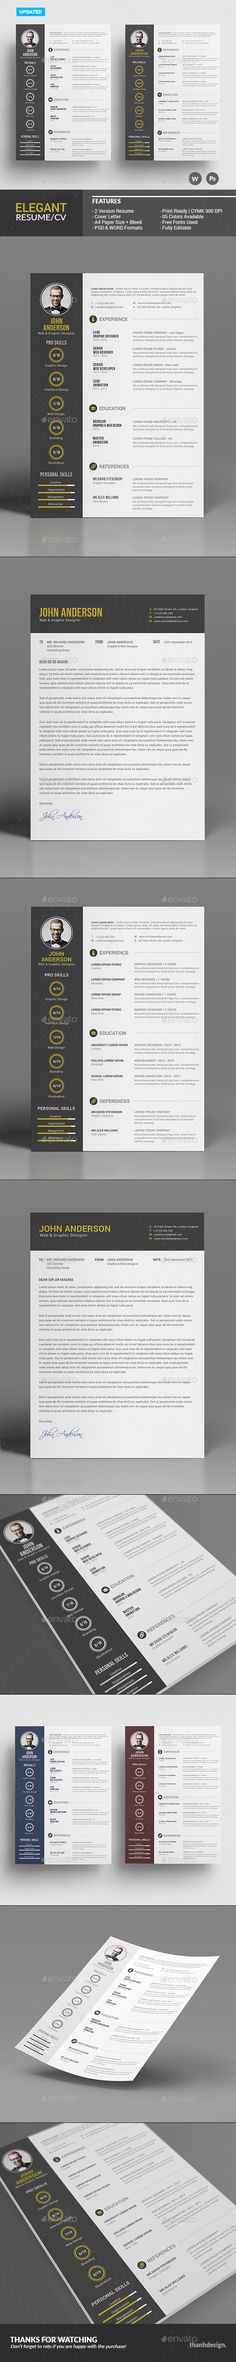 Pro Infographic Resume  Infographic Resume Infographic And Fonts